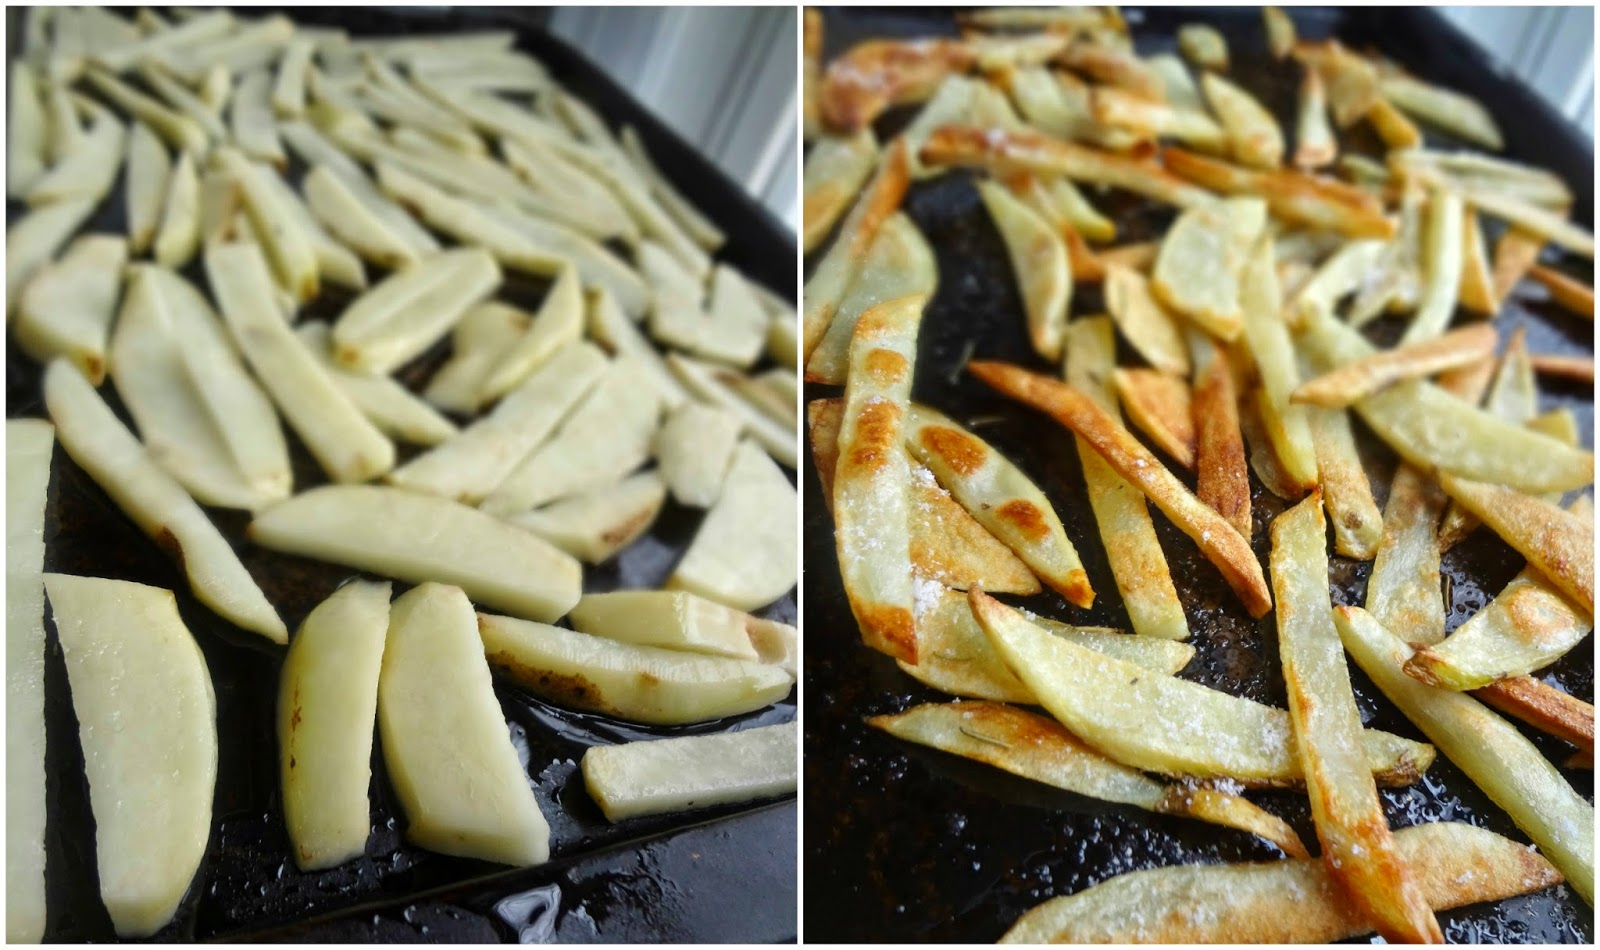 Baked French Fries with Rosemary